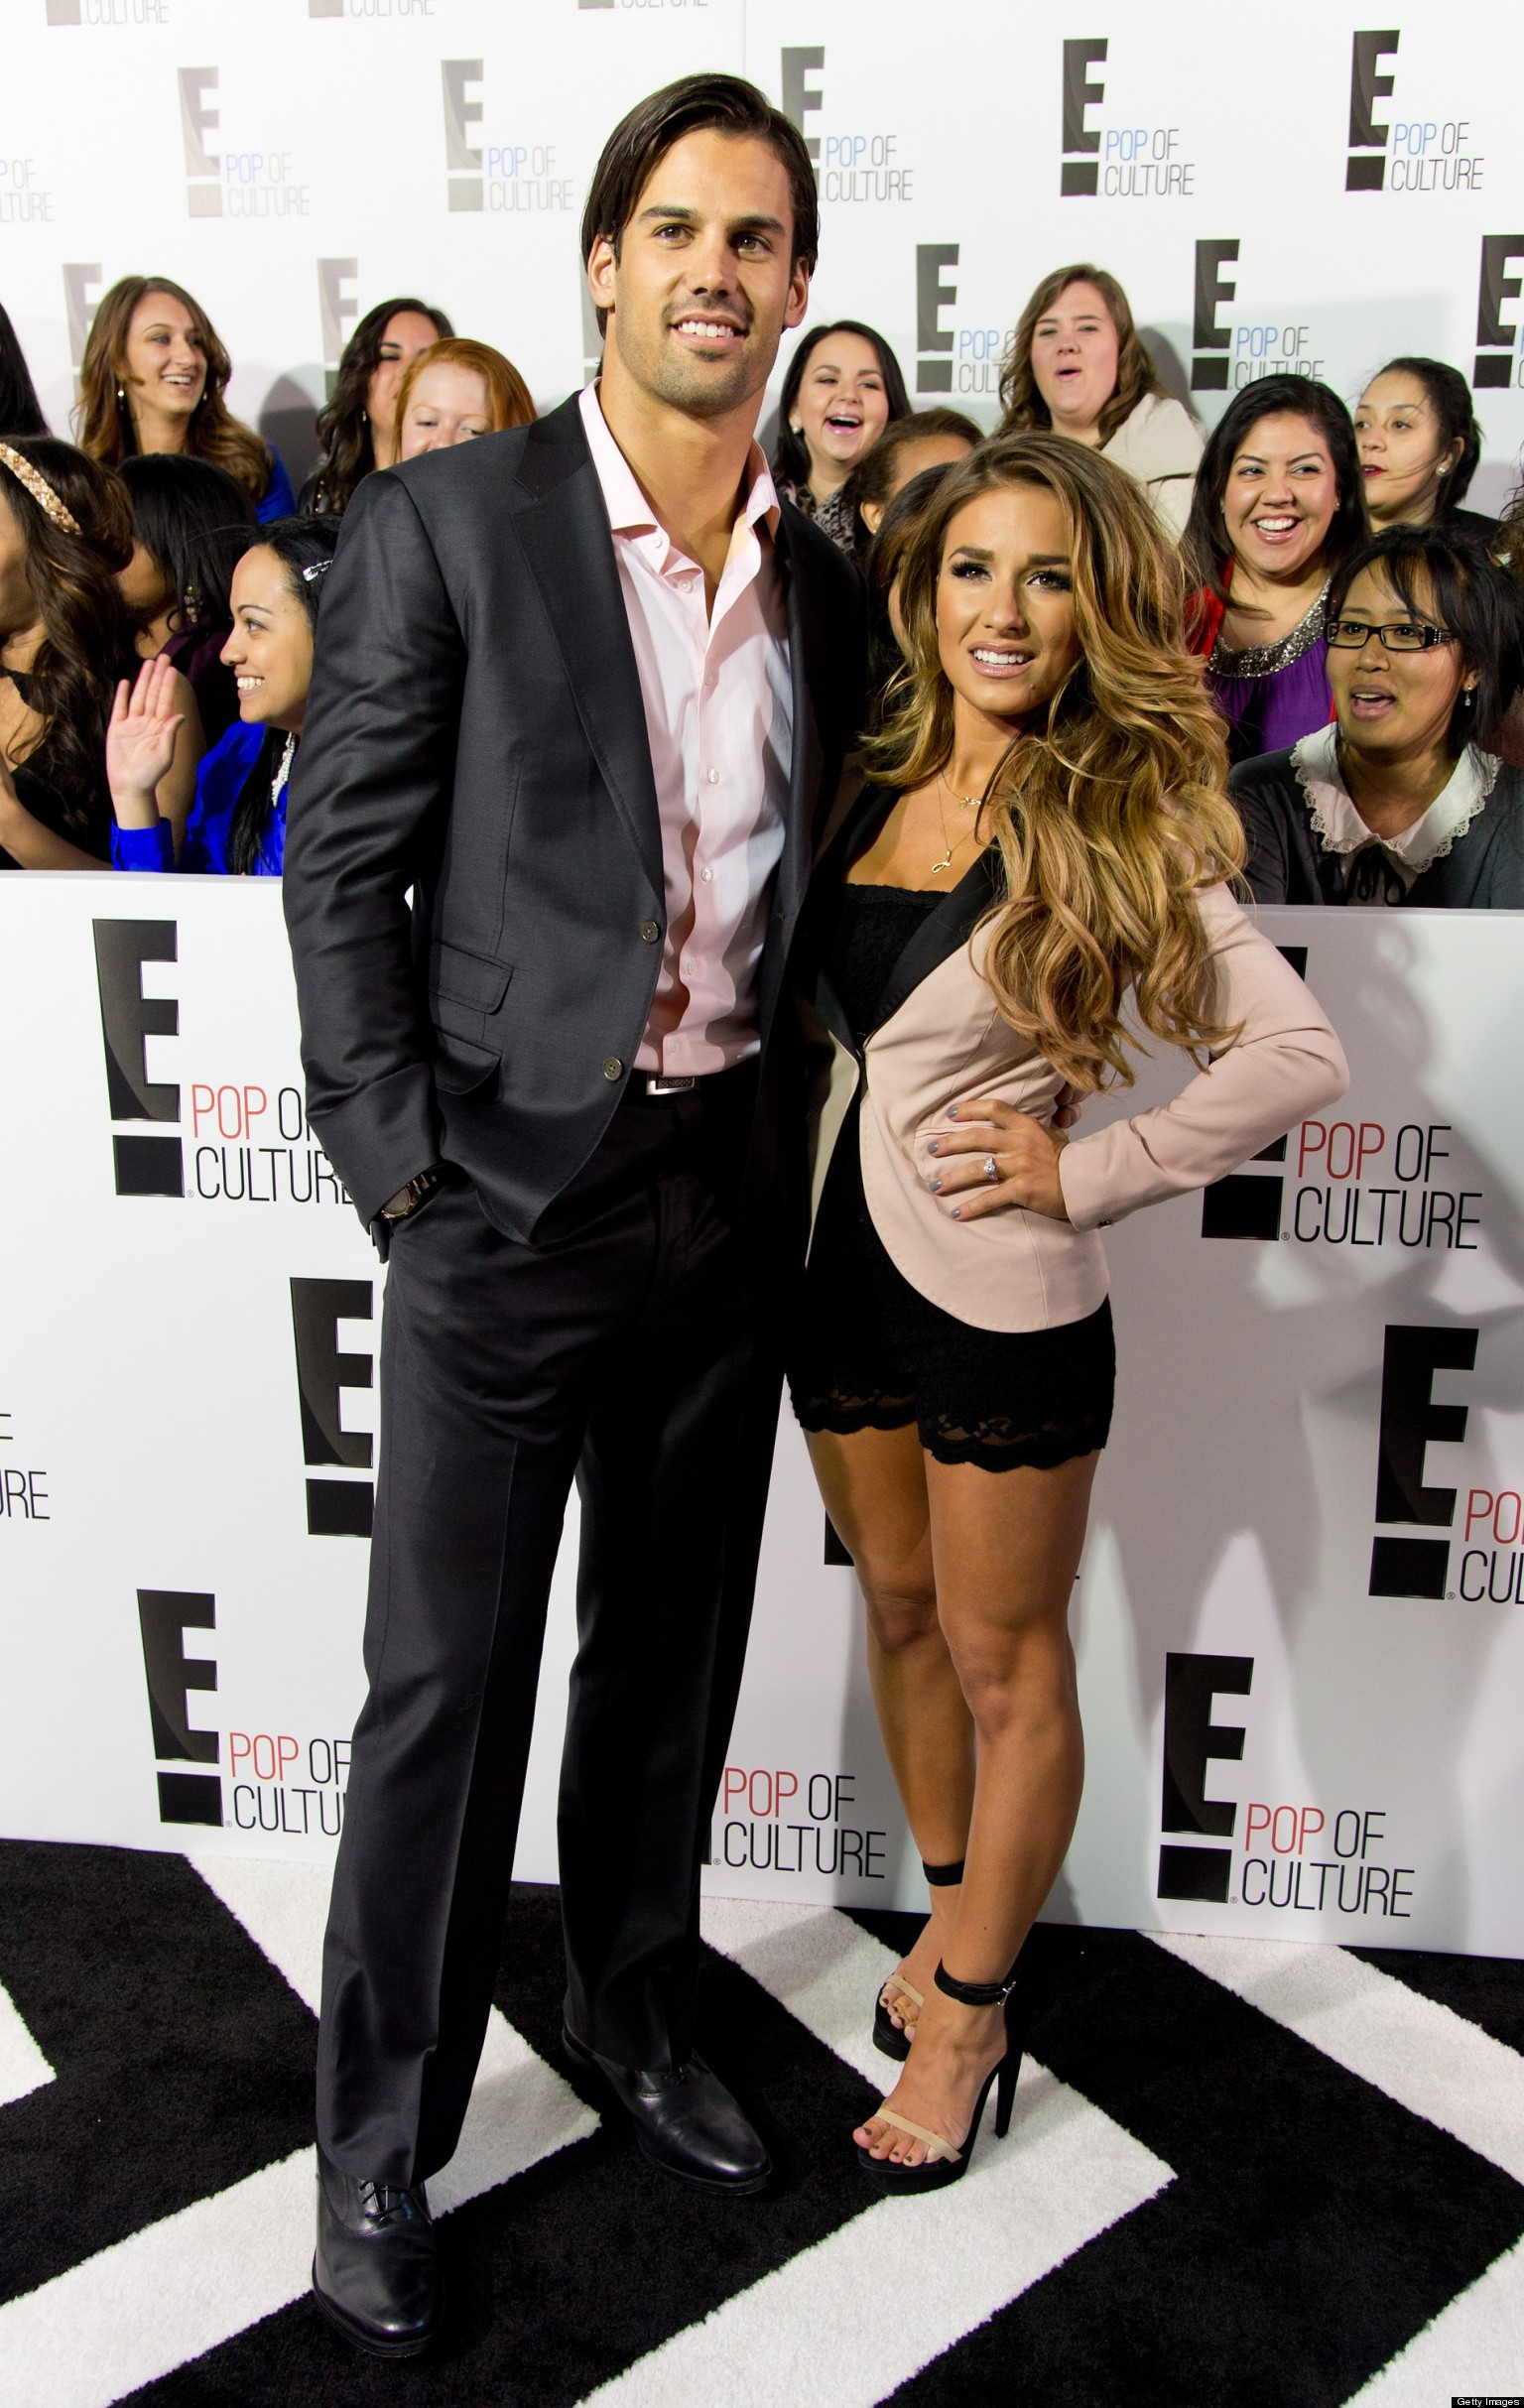 eric decker lands reality tv show with fiance jesse james